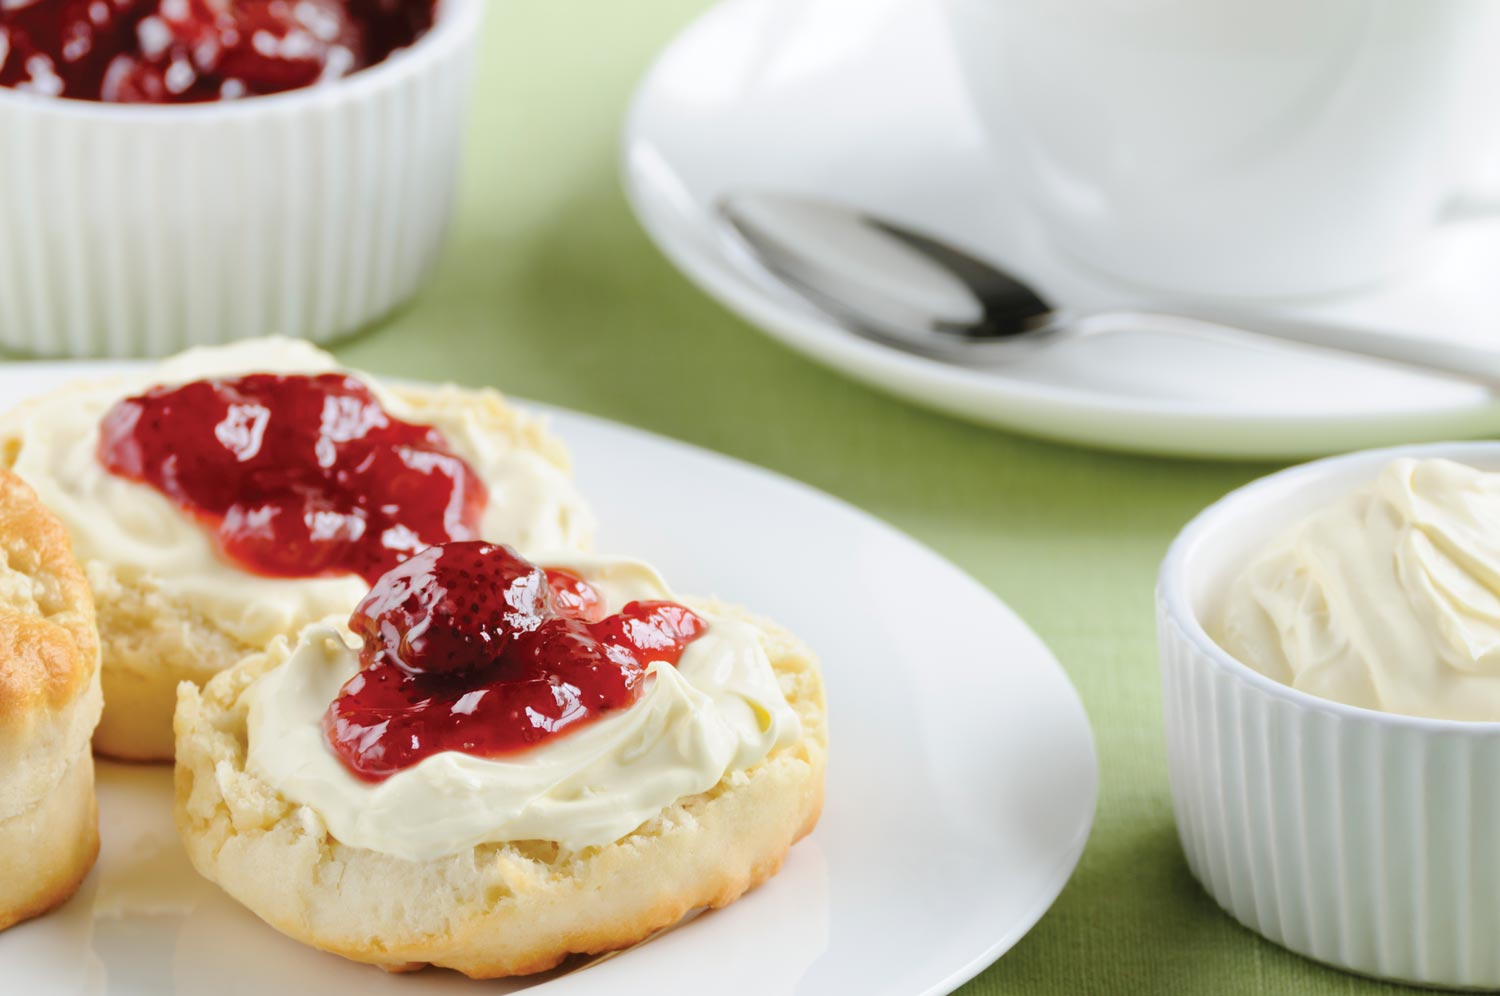 Enjoy Devonshire Cream teas!